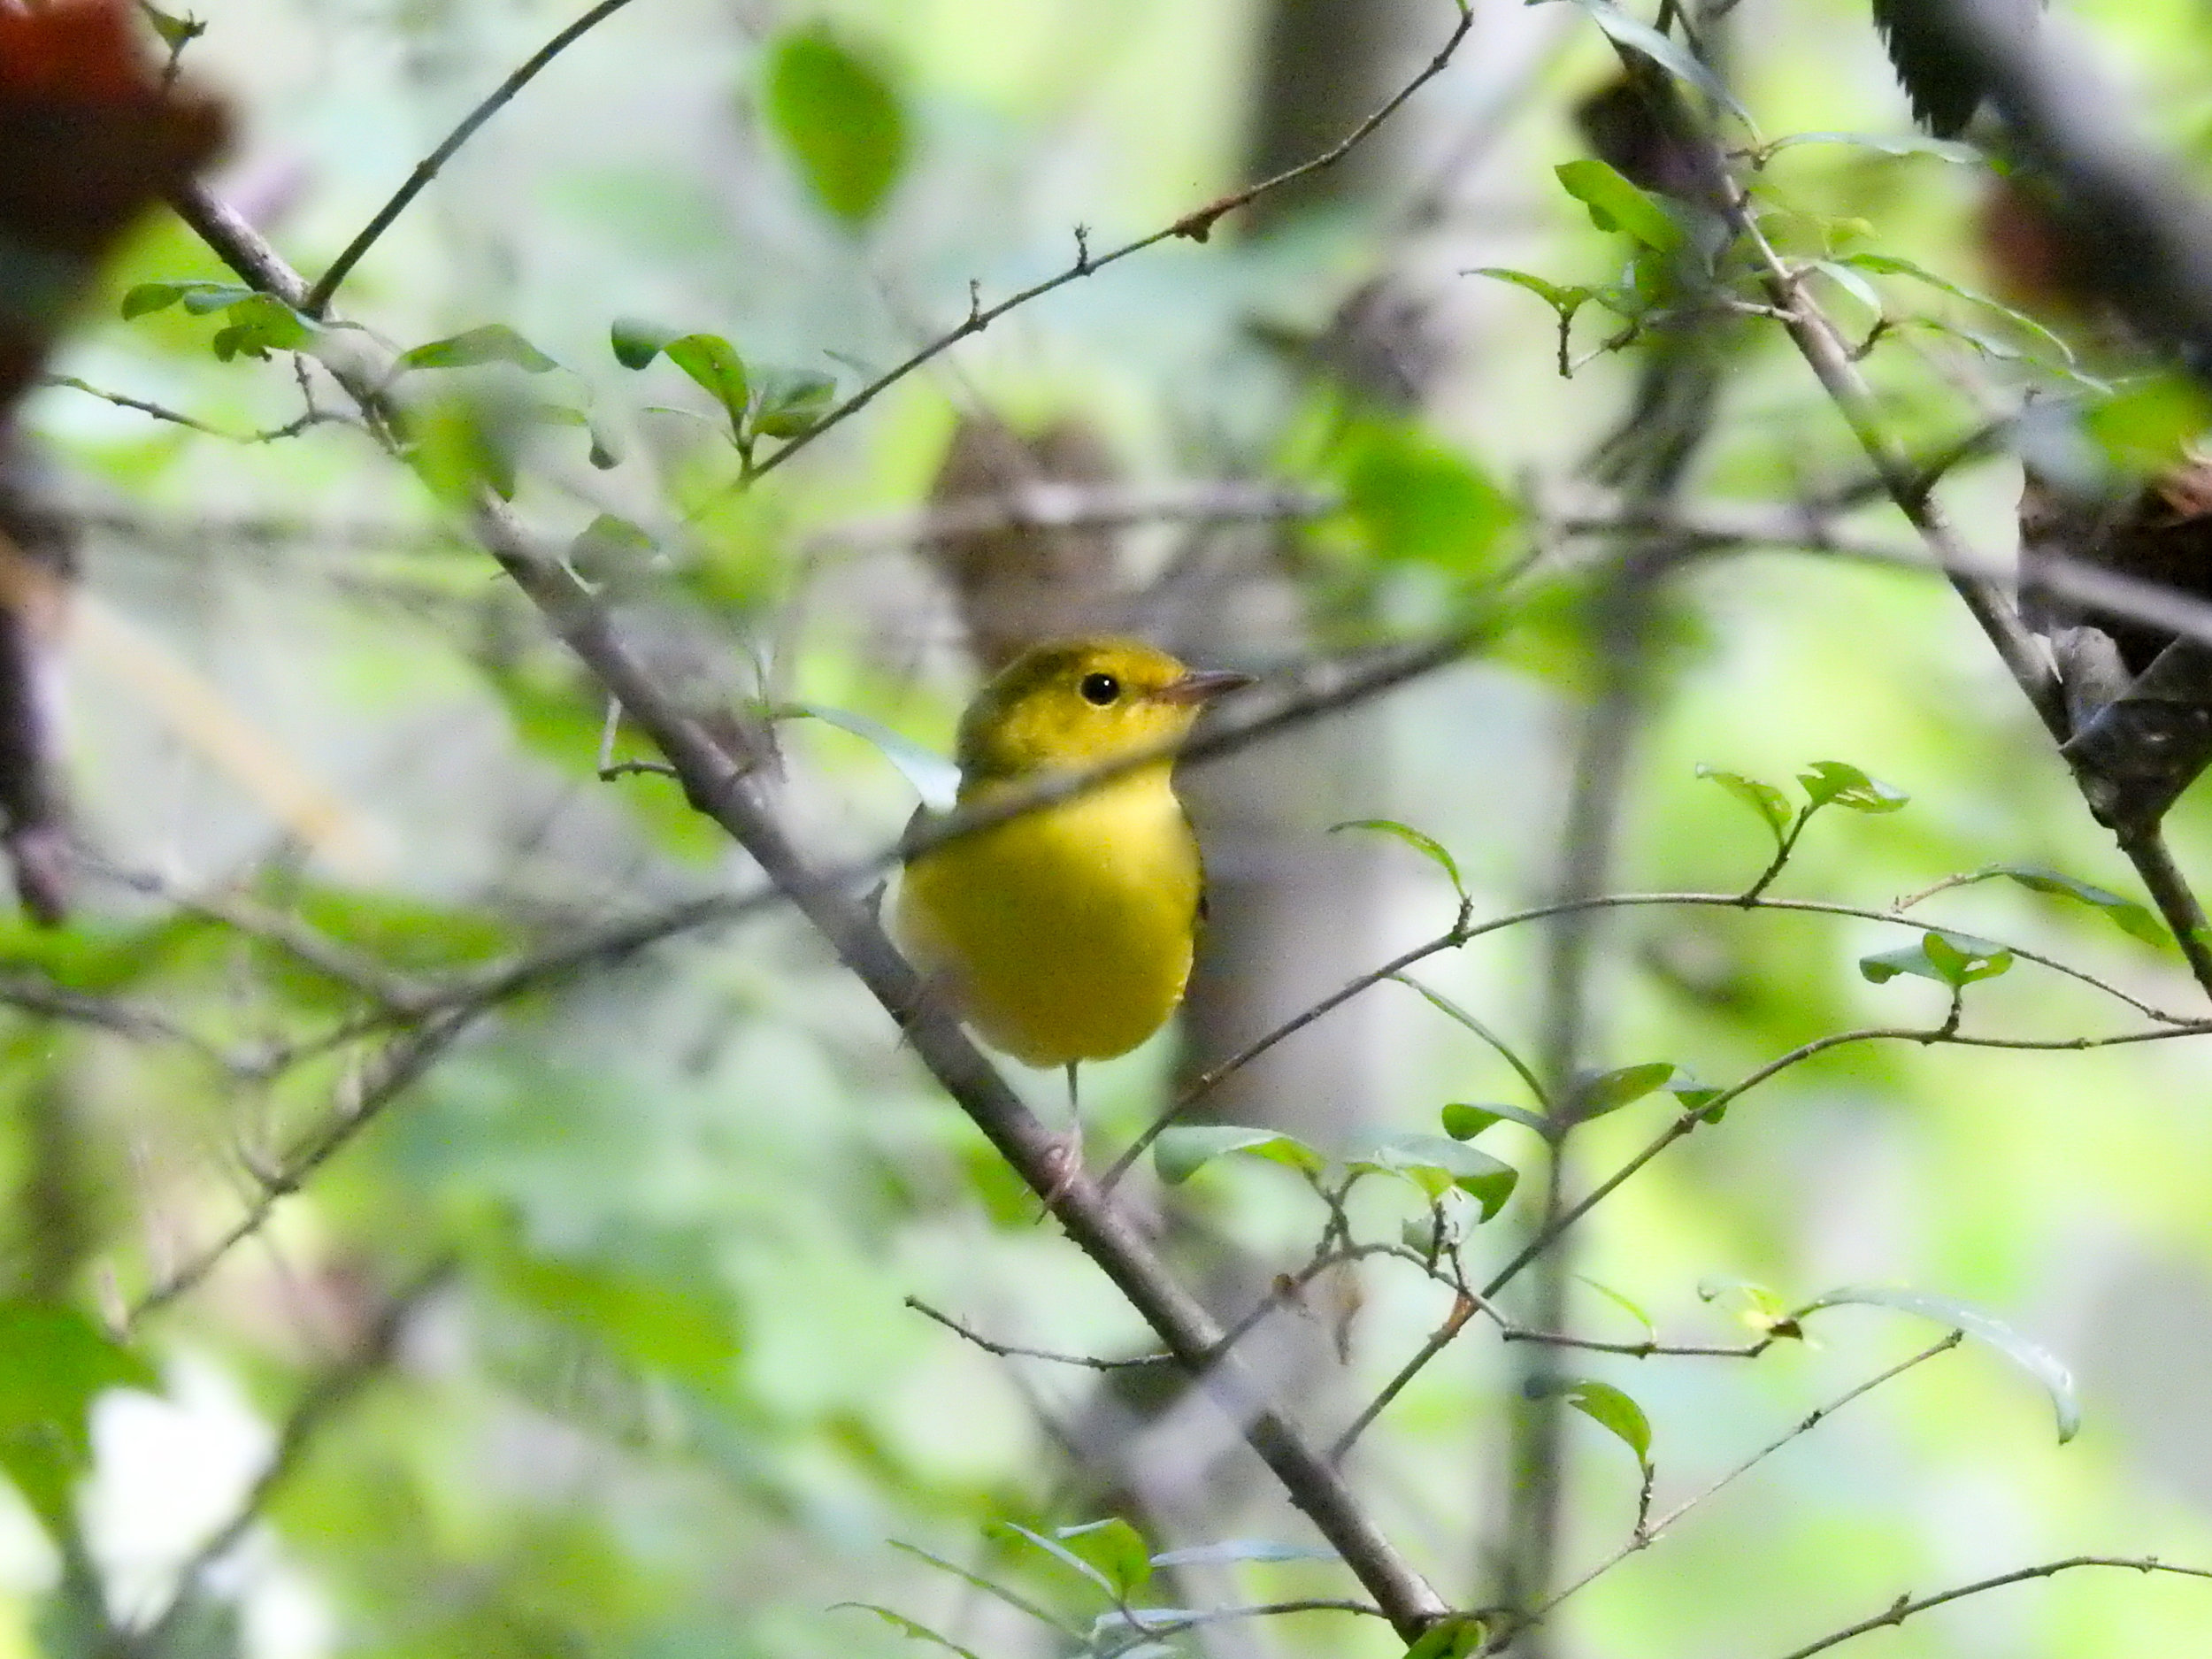 Hooded Warbler, September 23, 2017